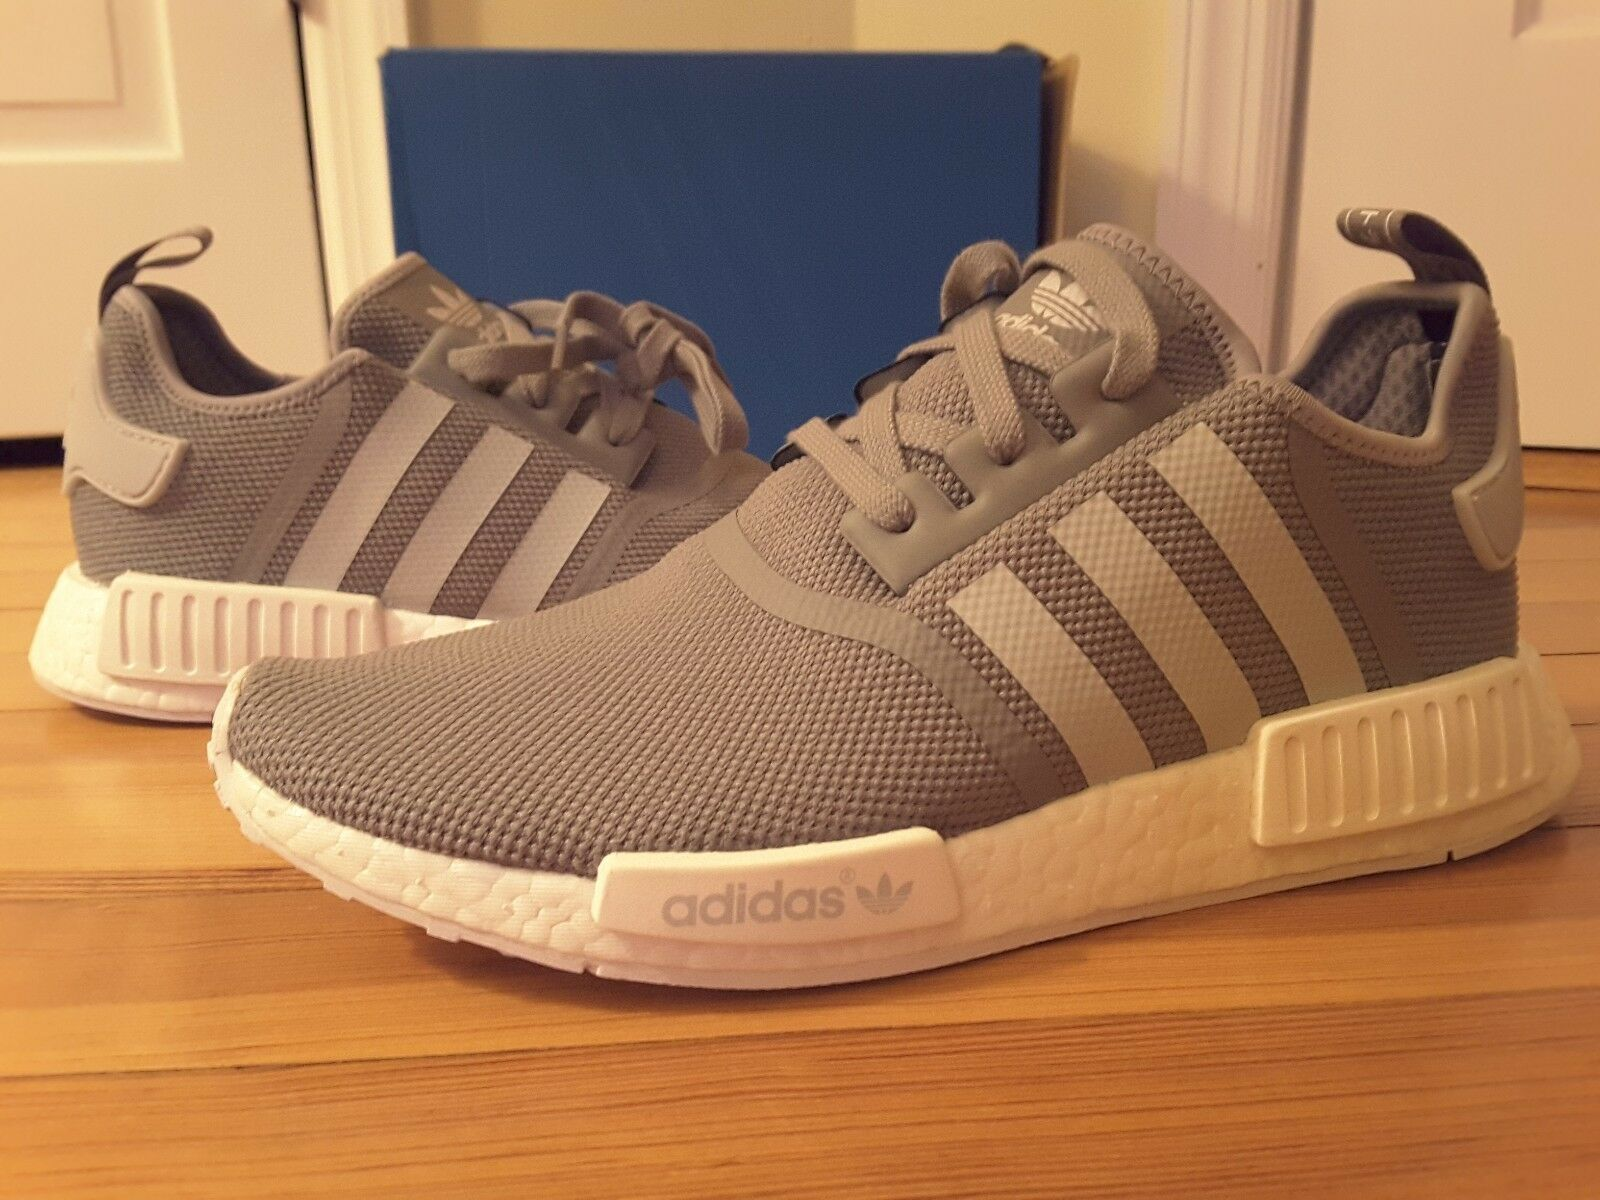 New Adidas Originals NMD R1 Charcoal Grey S31503 NMD_R1 Nomad Runner Cool White